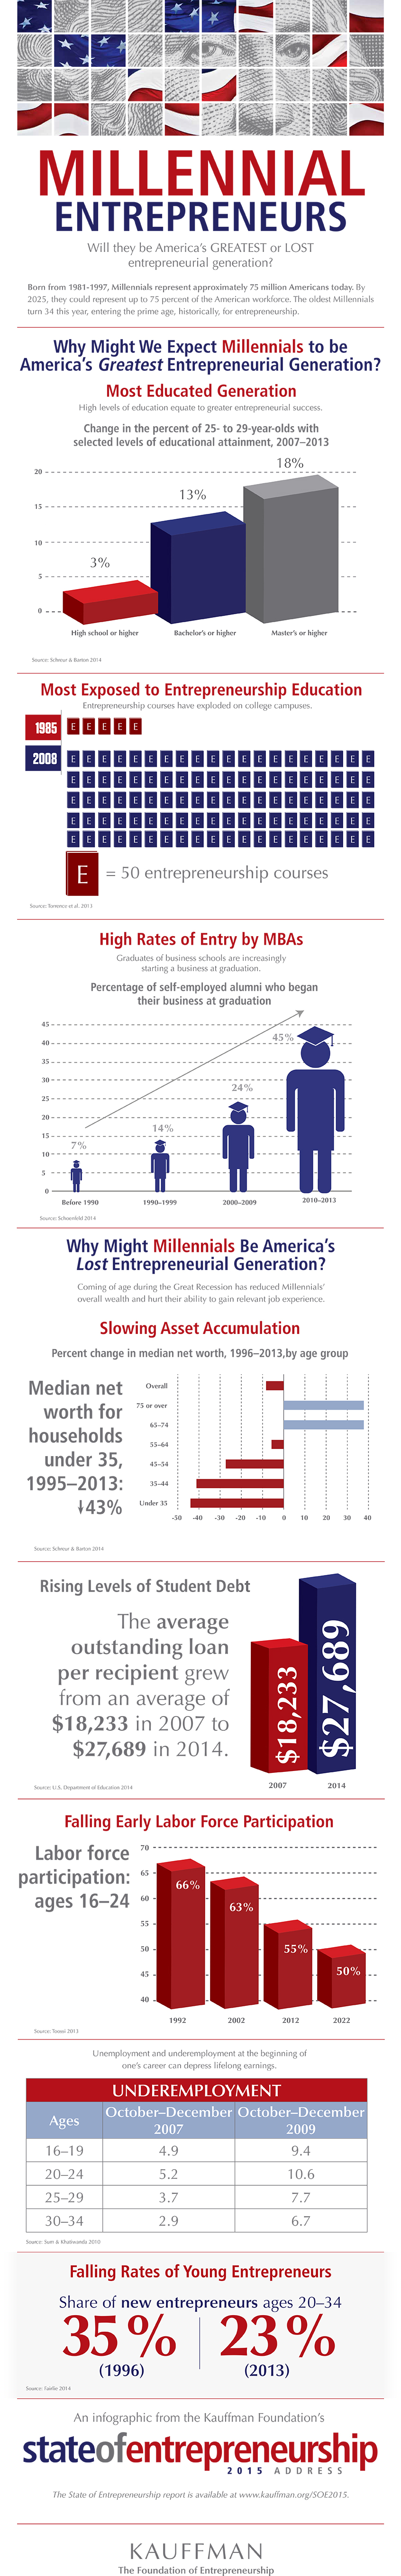 Fromhttp://www.kauffman.org/multimedia/infographics/2015/infographic-millennial-entrepreneurs-and-the-state-of-entrepreneurship